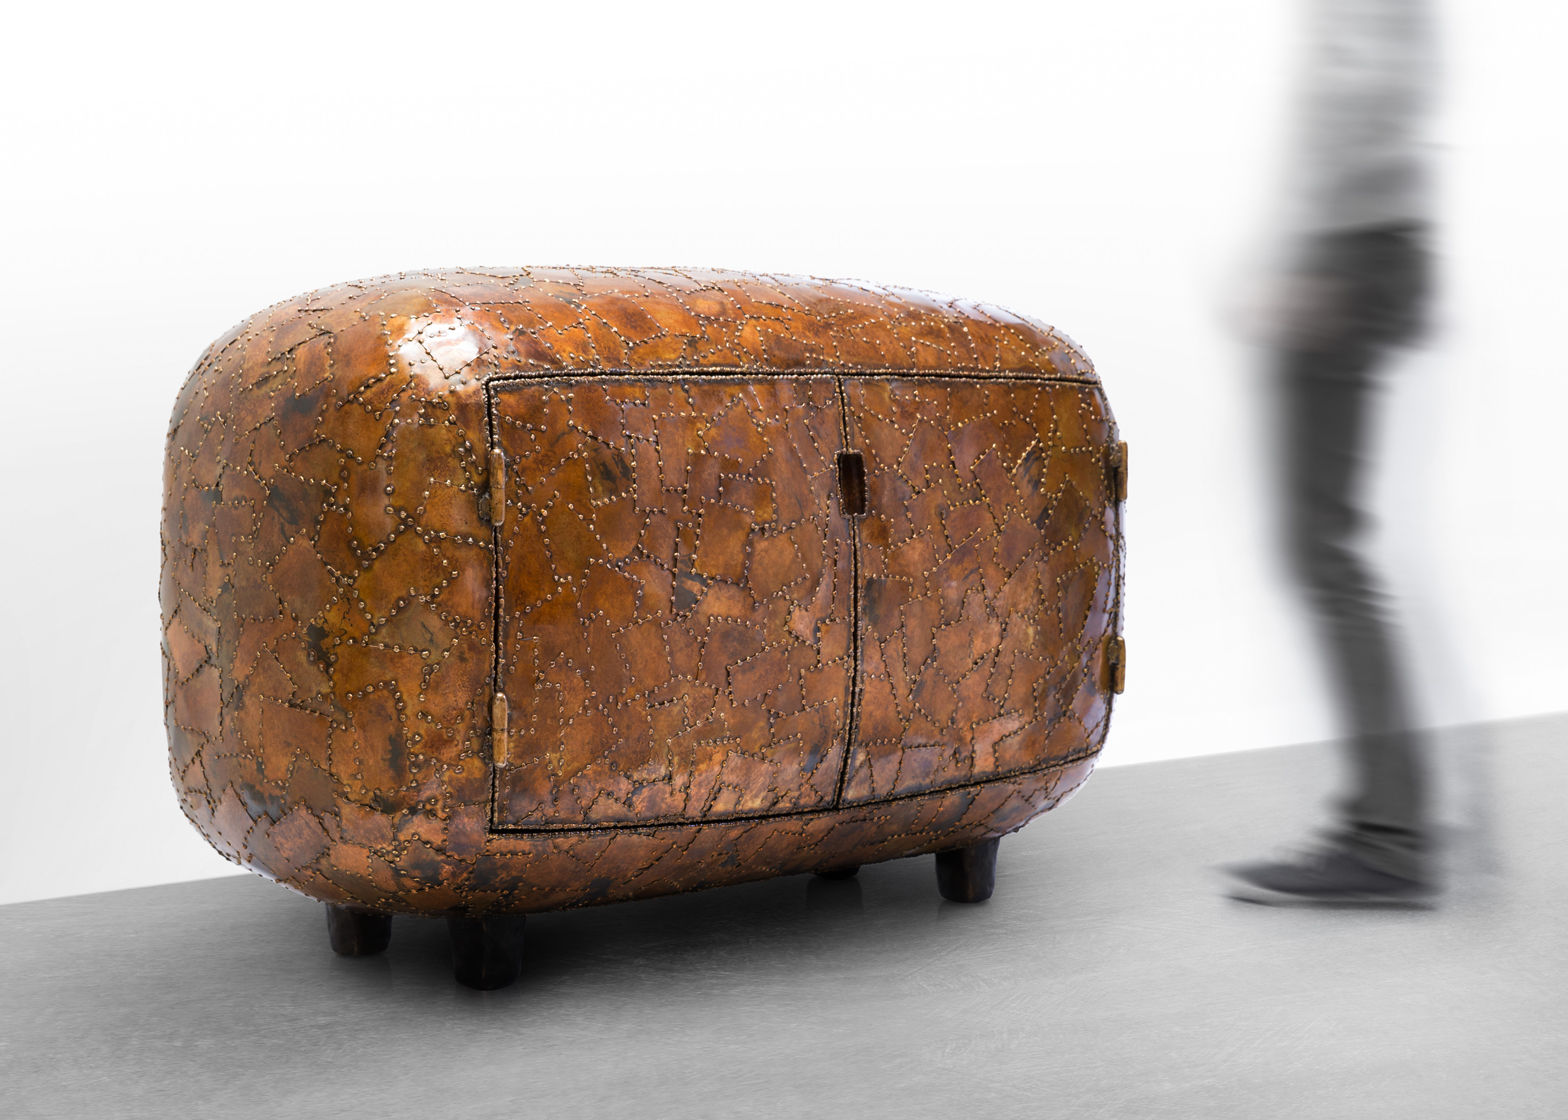 Maarten Baas exhibits Carapace collection at Carpenters Workshop Gallery